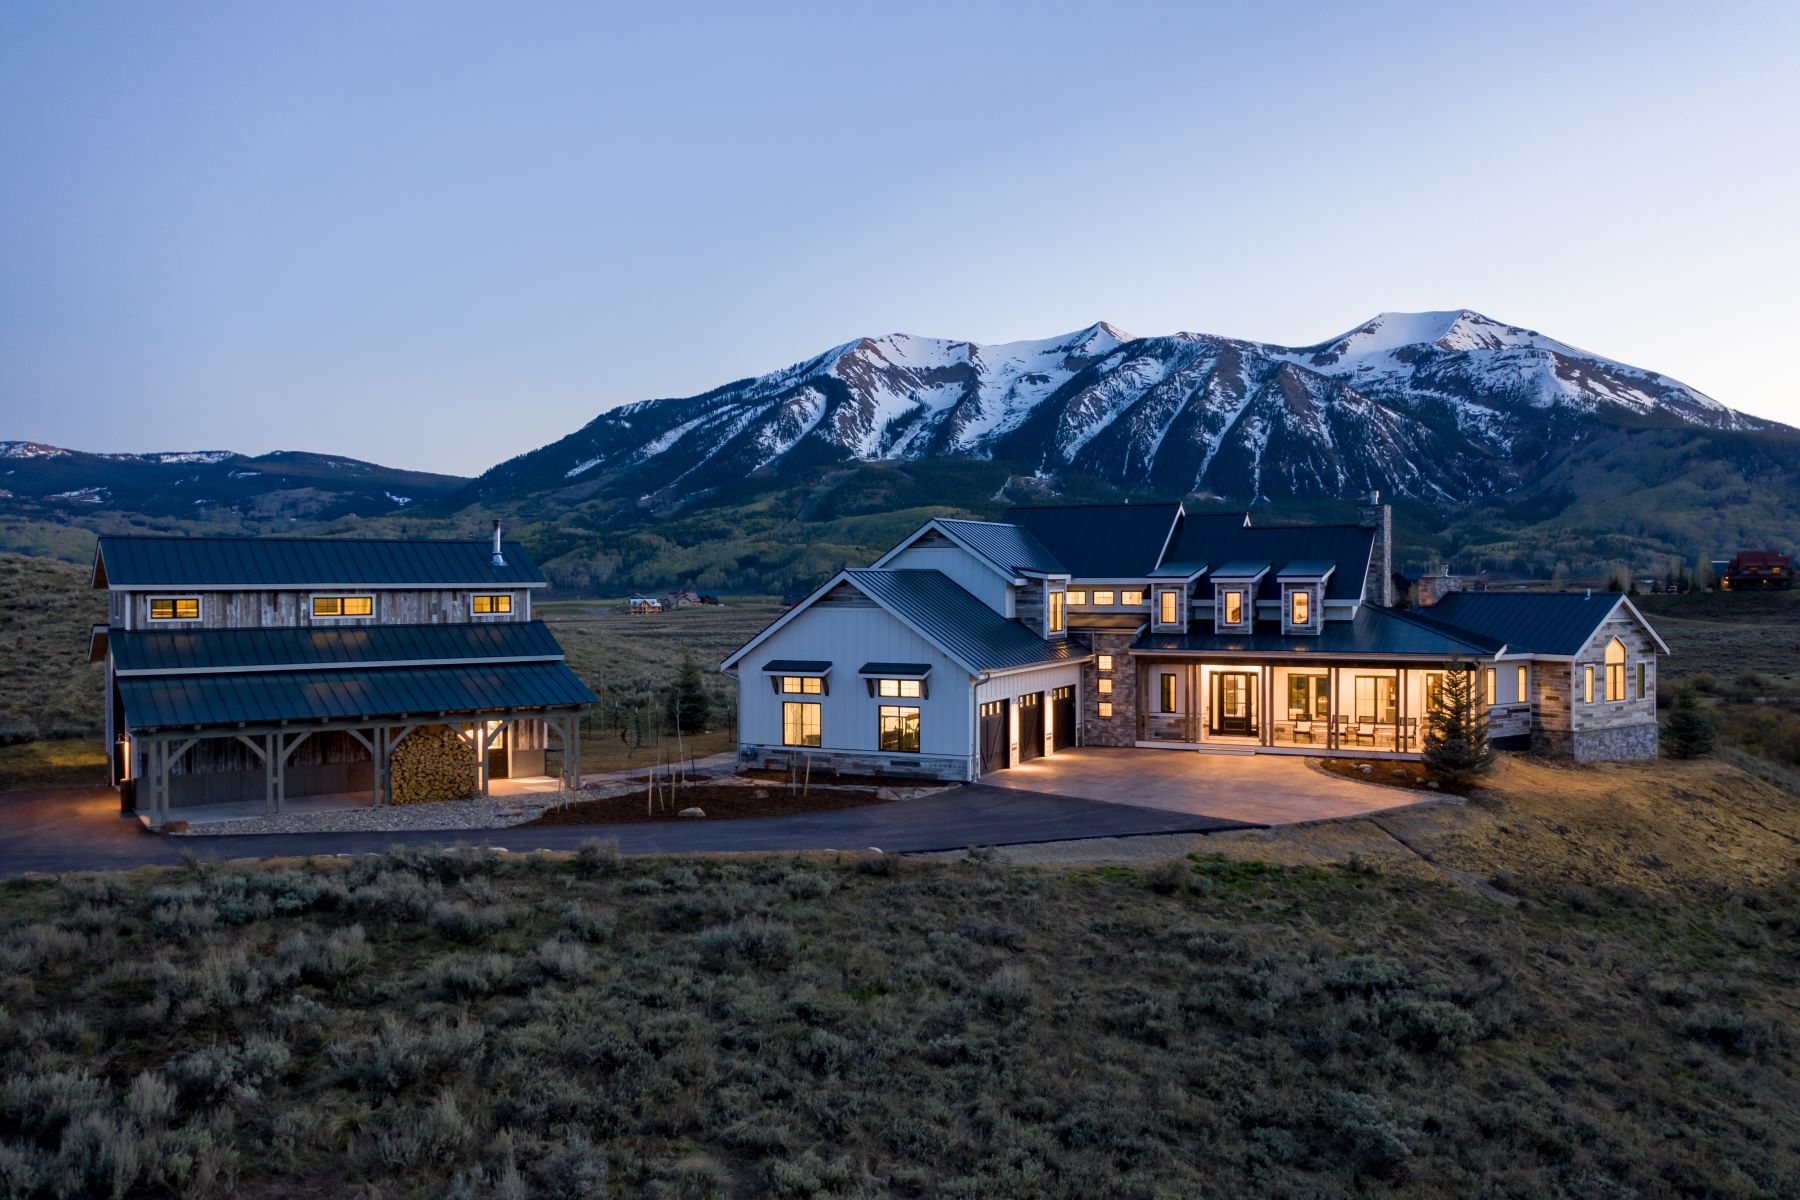 Single Family Homes for Sale at 395 Lake Ridge Drive Crested Butte, Colorado 81224 United States